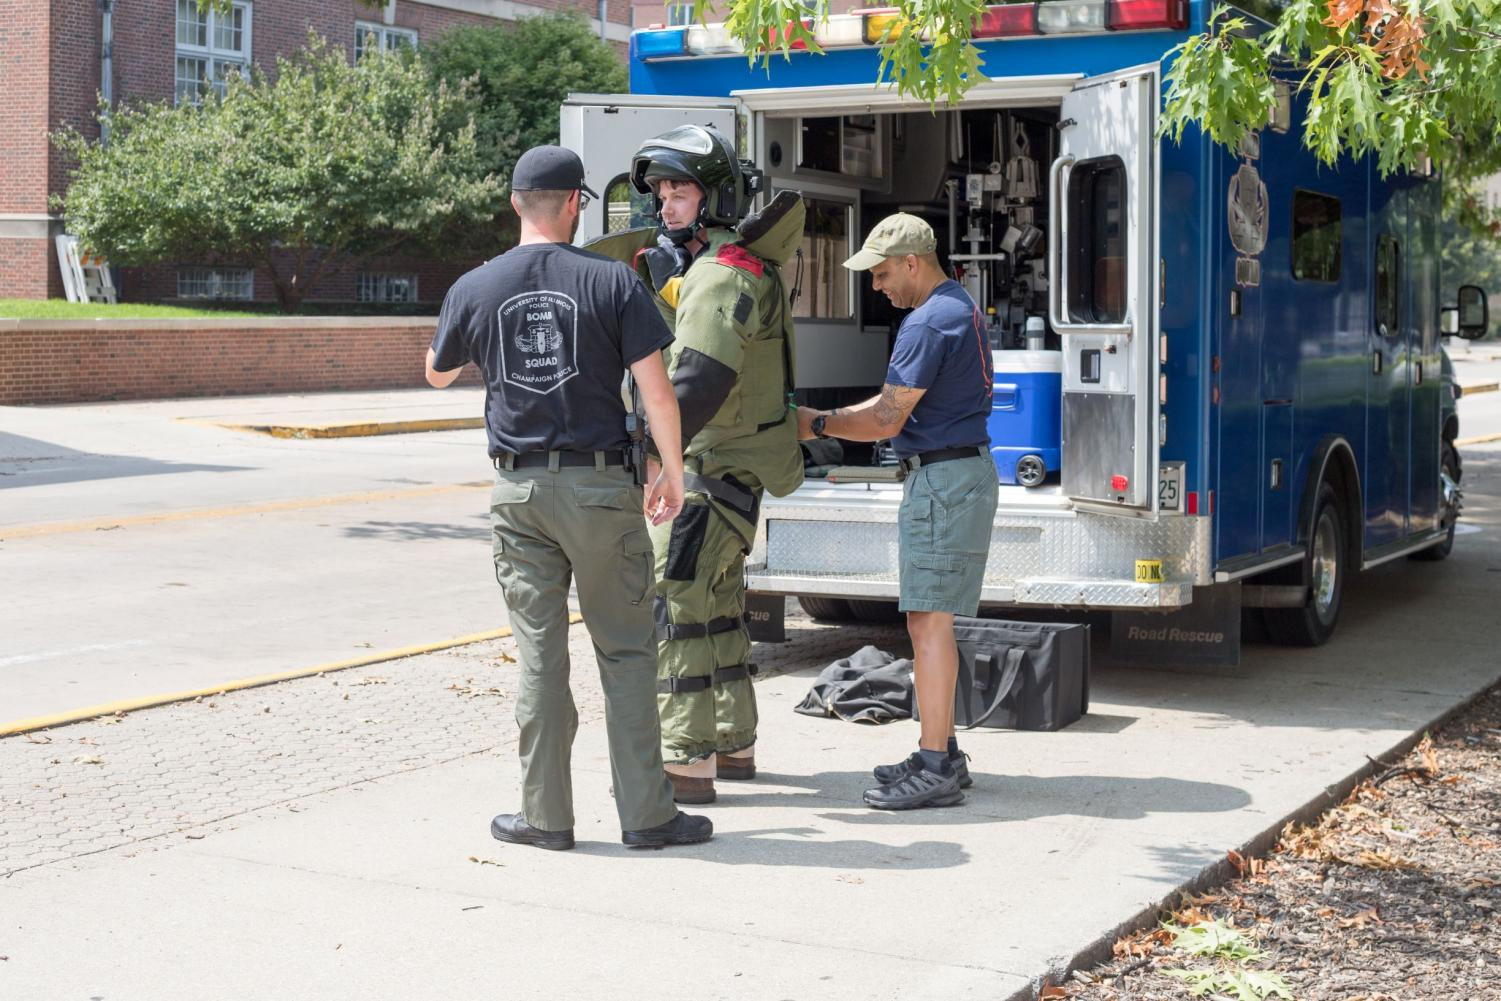 A member of the bomb squad suits up to address a suspicious package left on the 1100 block of Sixth Street on Aug. 26.